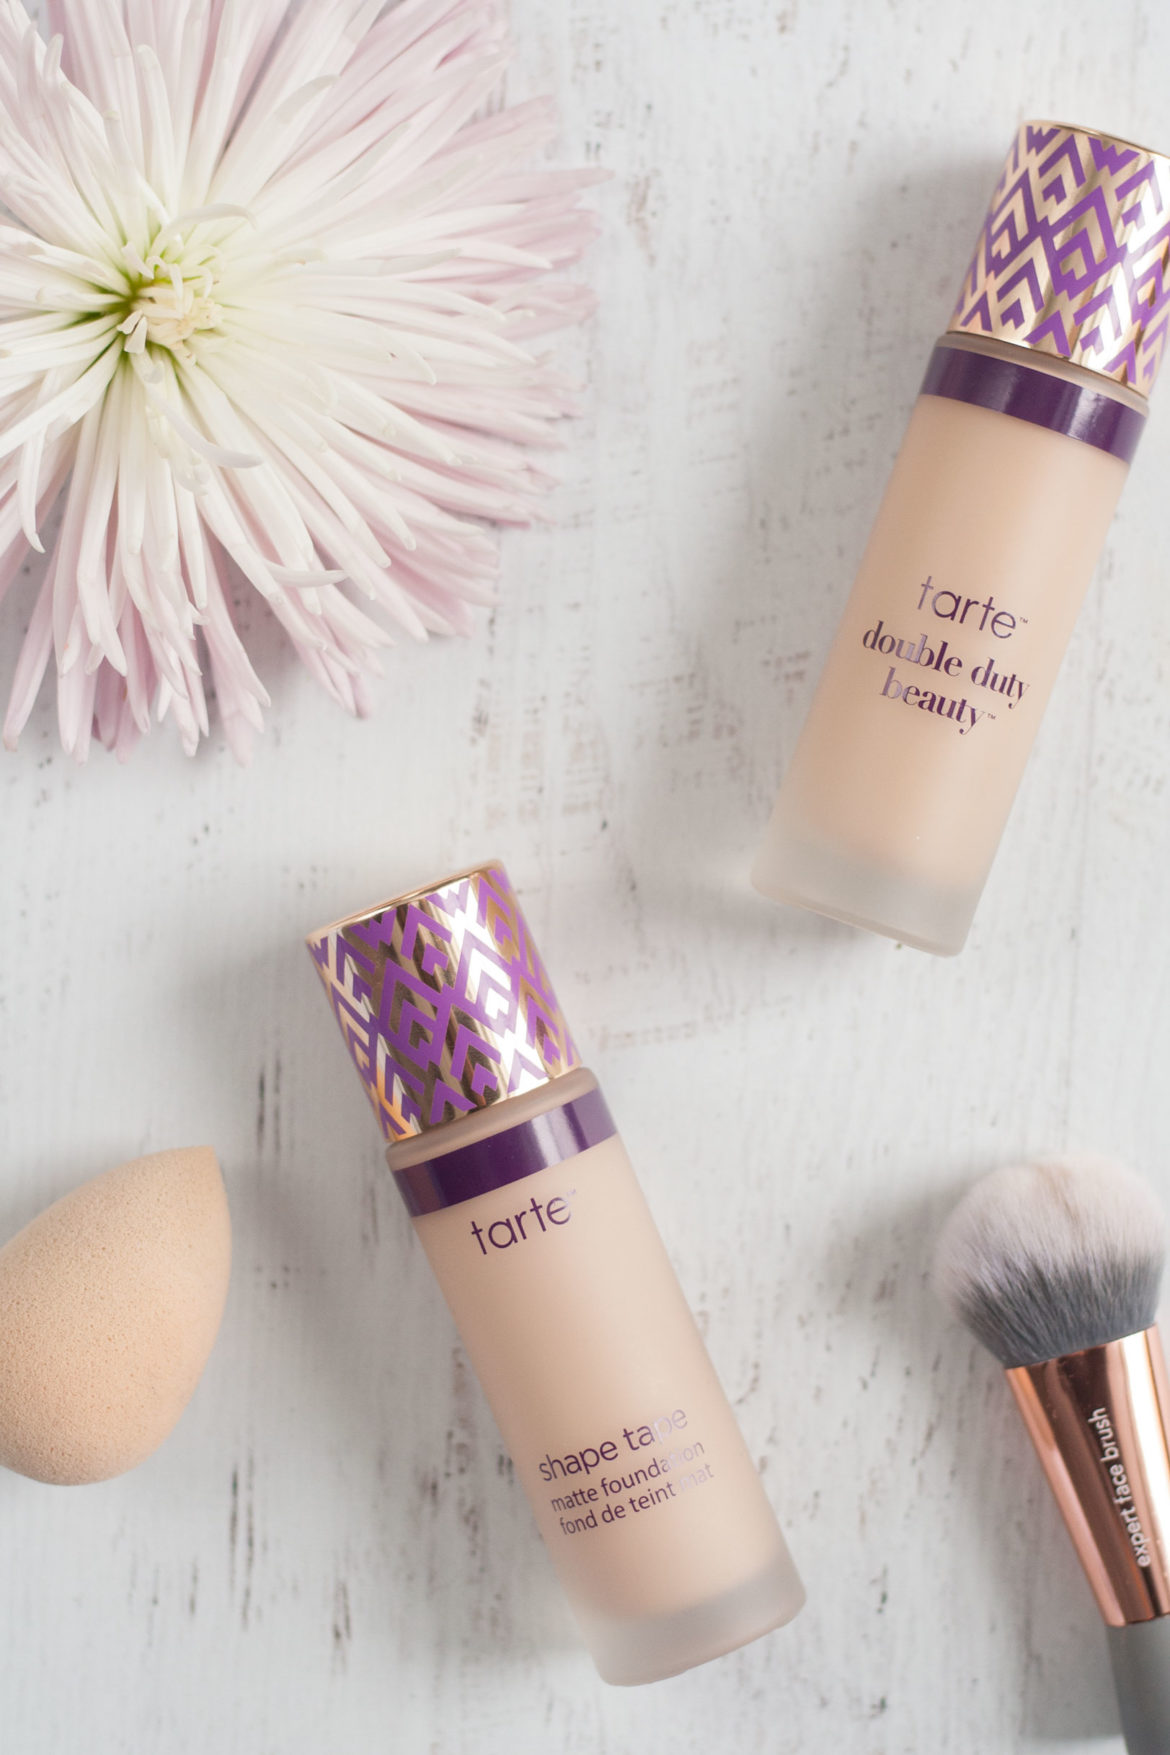 Tarte Shape Tape Foundation Bit Bauble Matte I Have Combination Oily Skin Say That Not To Be Unique And More Complicated Than Others But Because Im All Over Also Dry In Any